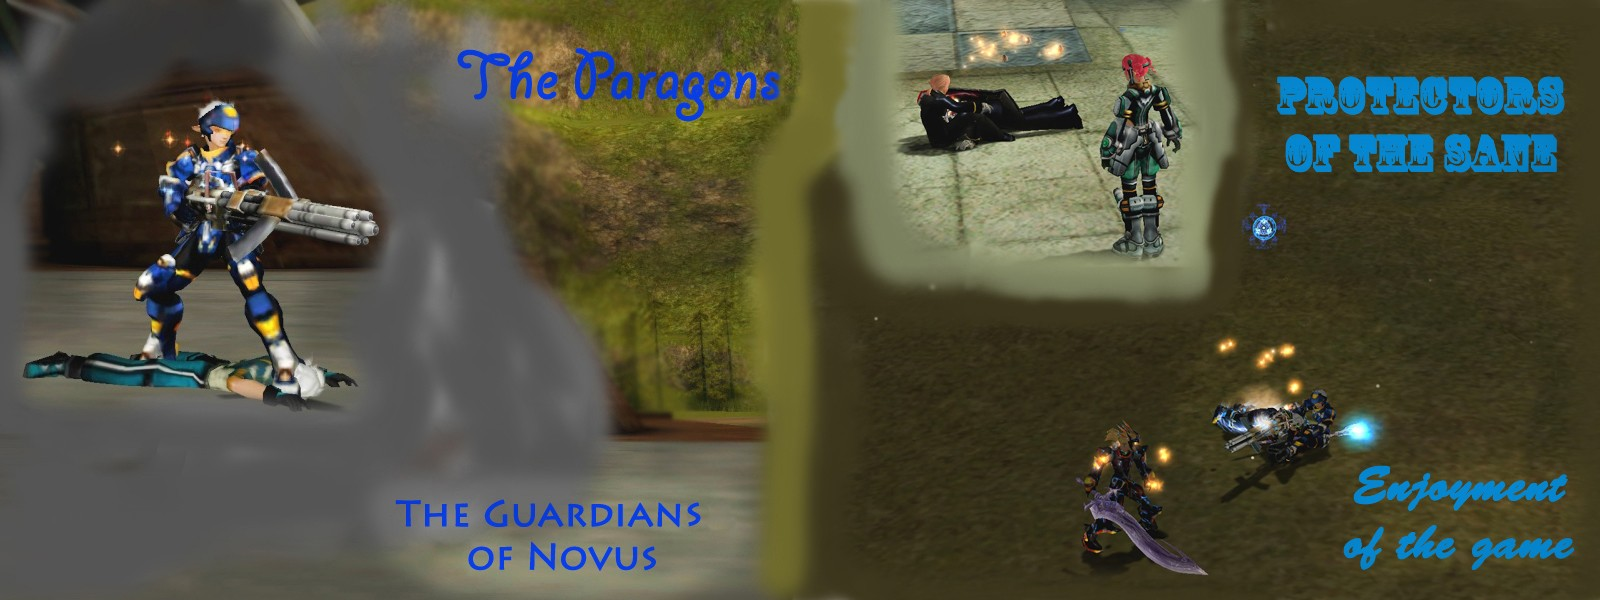 TheParagons signature picture contest!! - Page 2 The_pa15